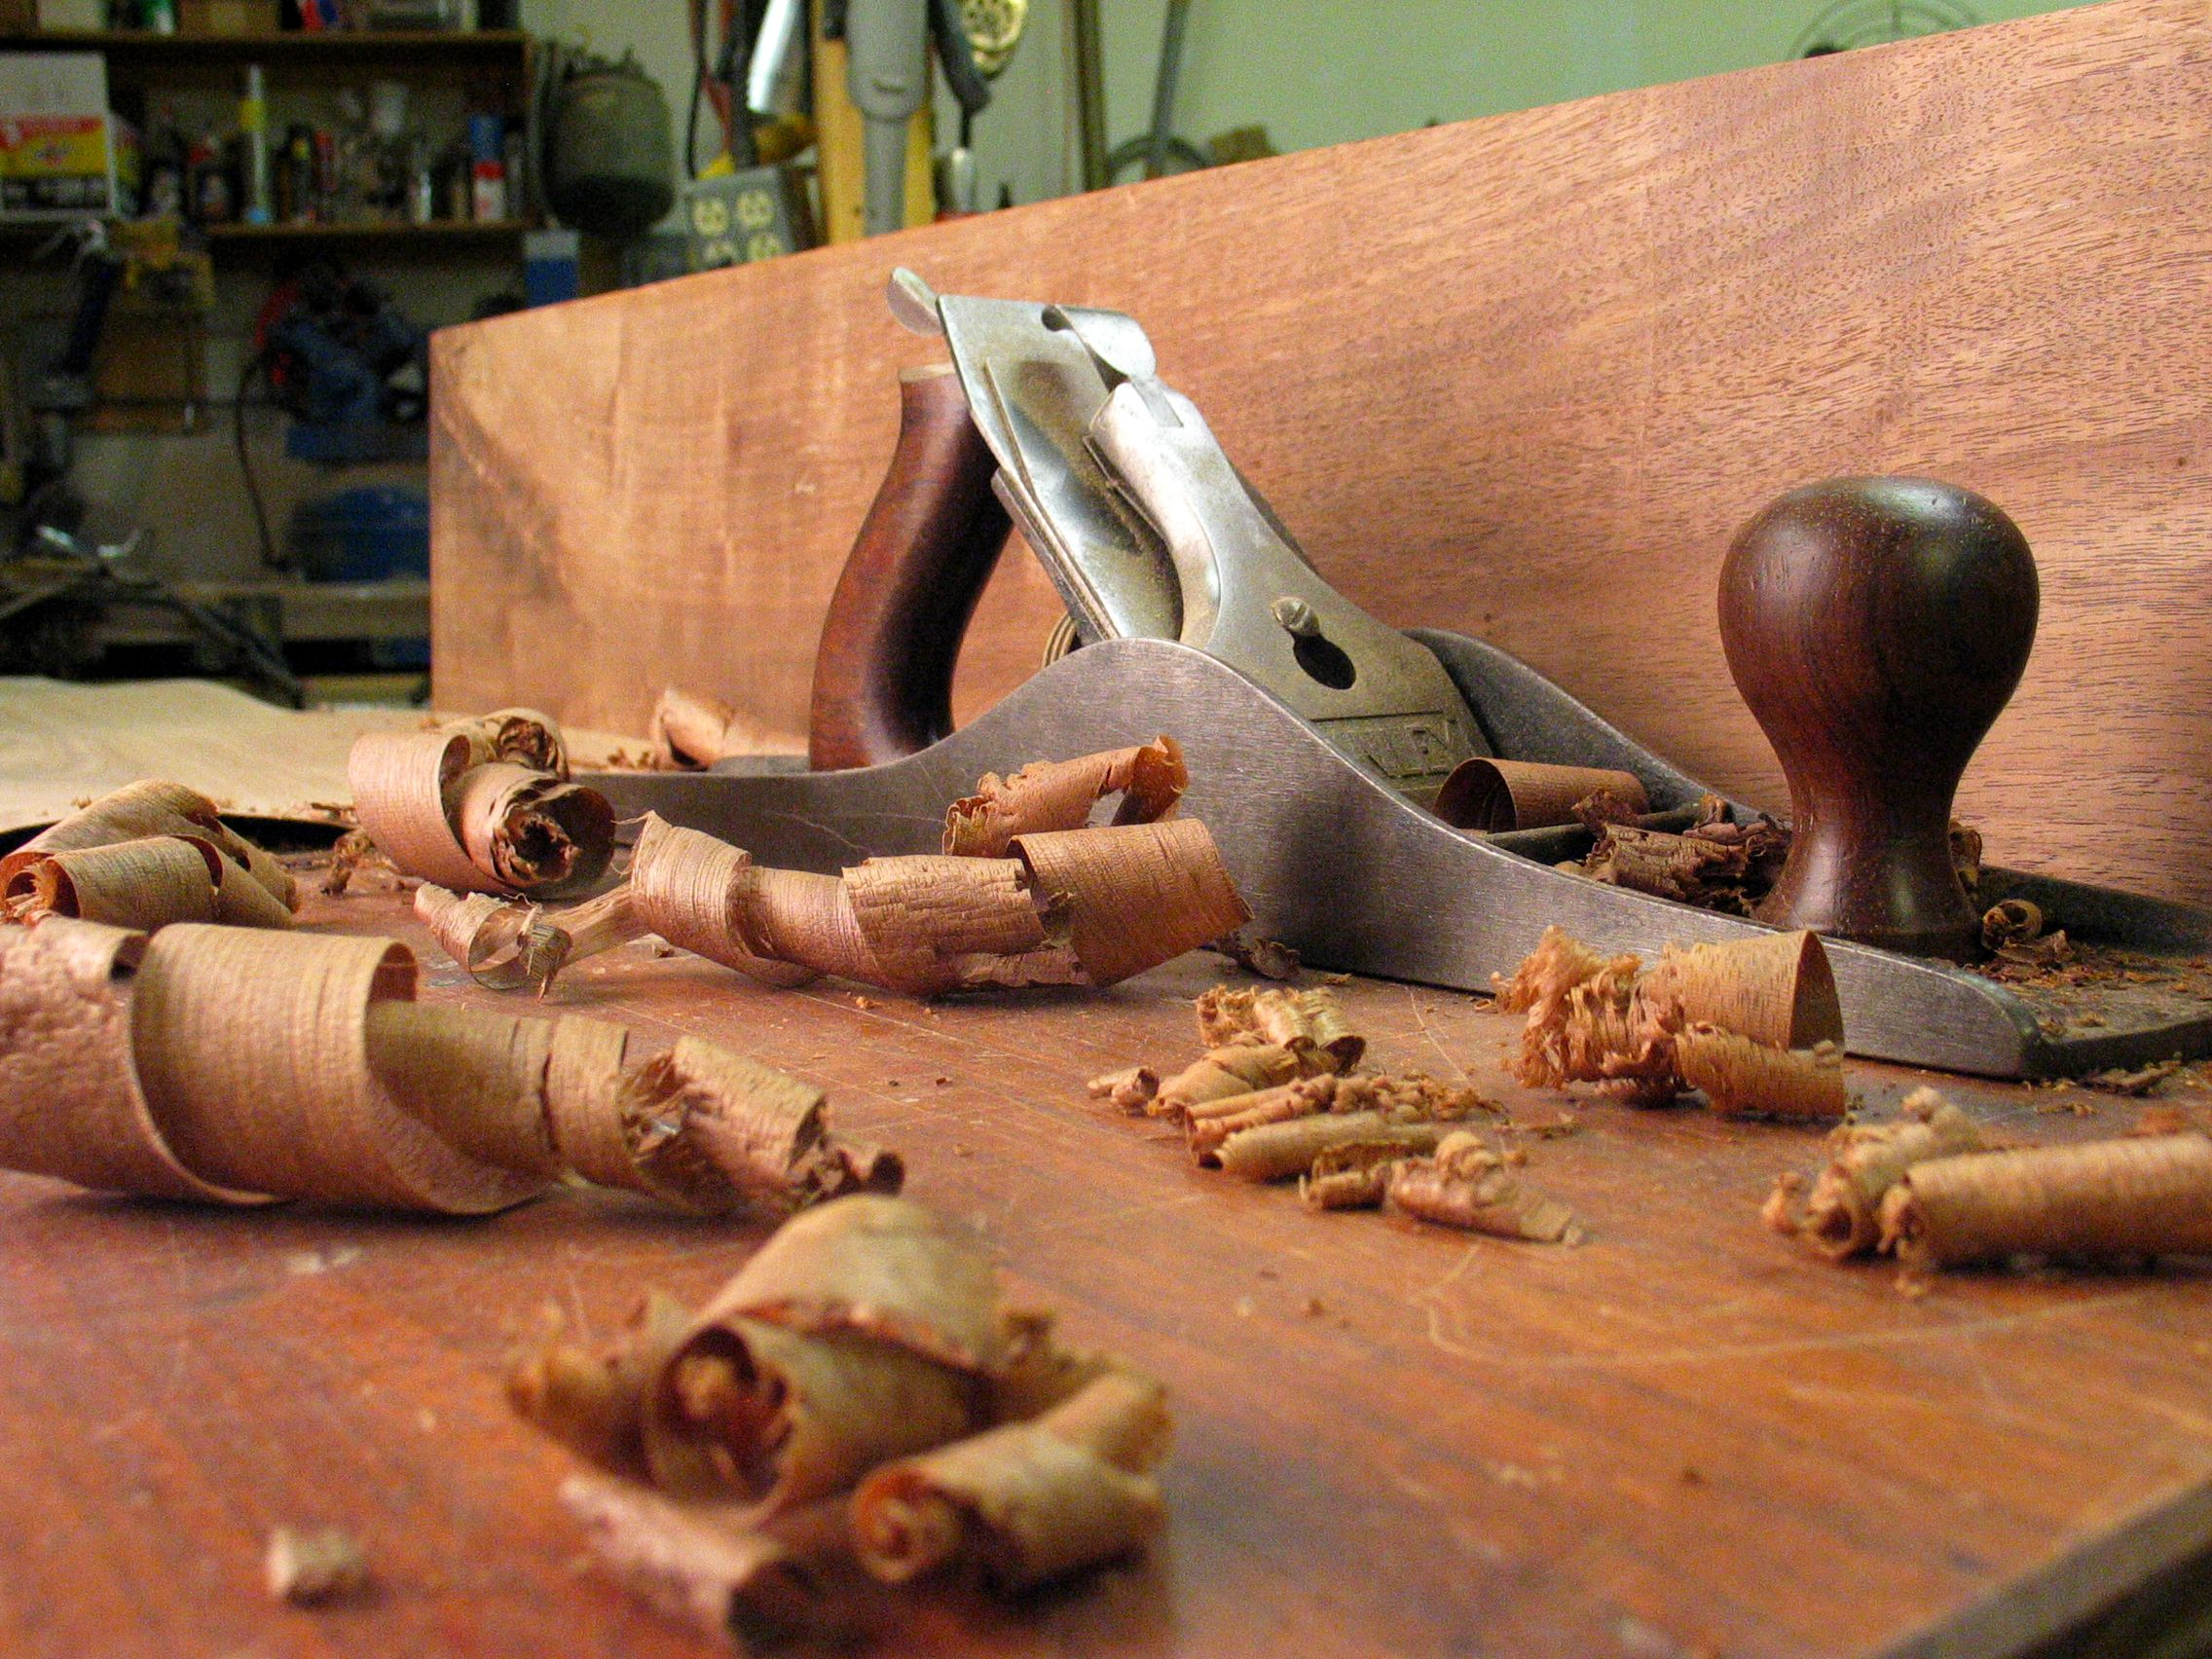 2272x1704 Woodworking Wisdom I Wish I'd Known Sooner - No. 2: Buy tools only ...